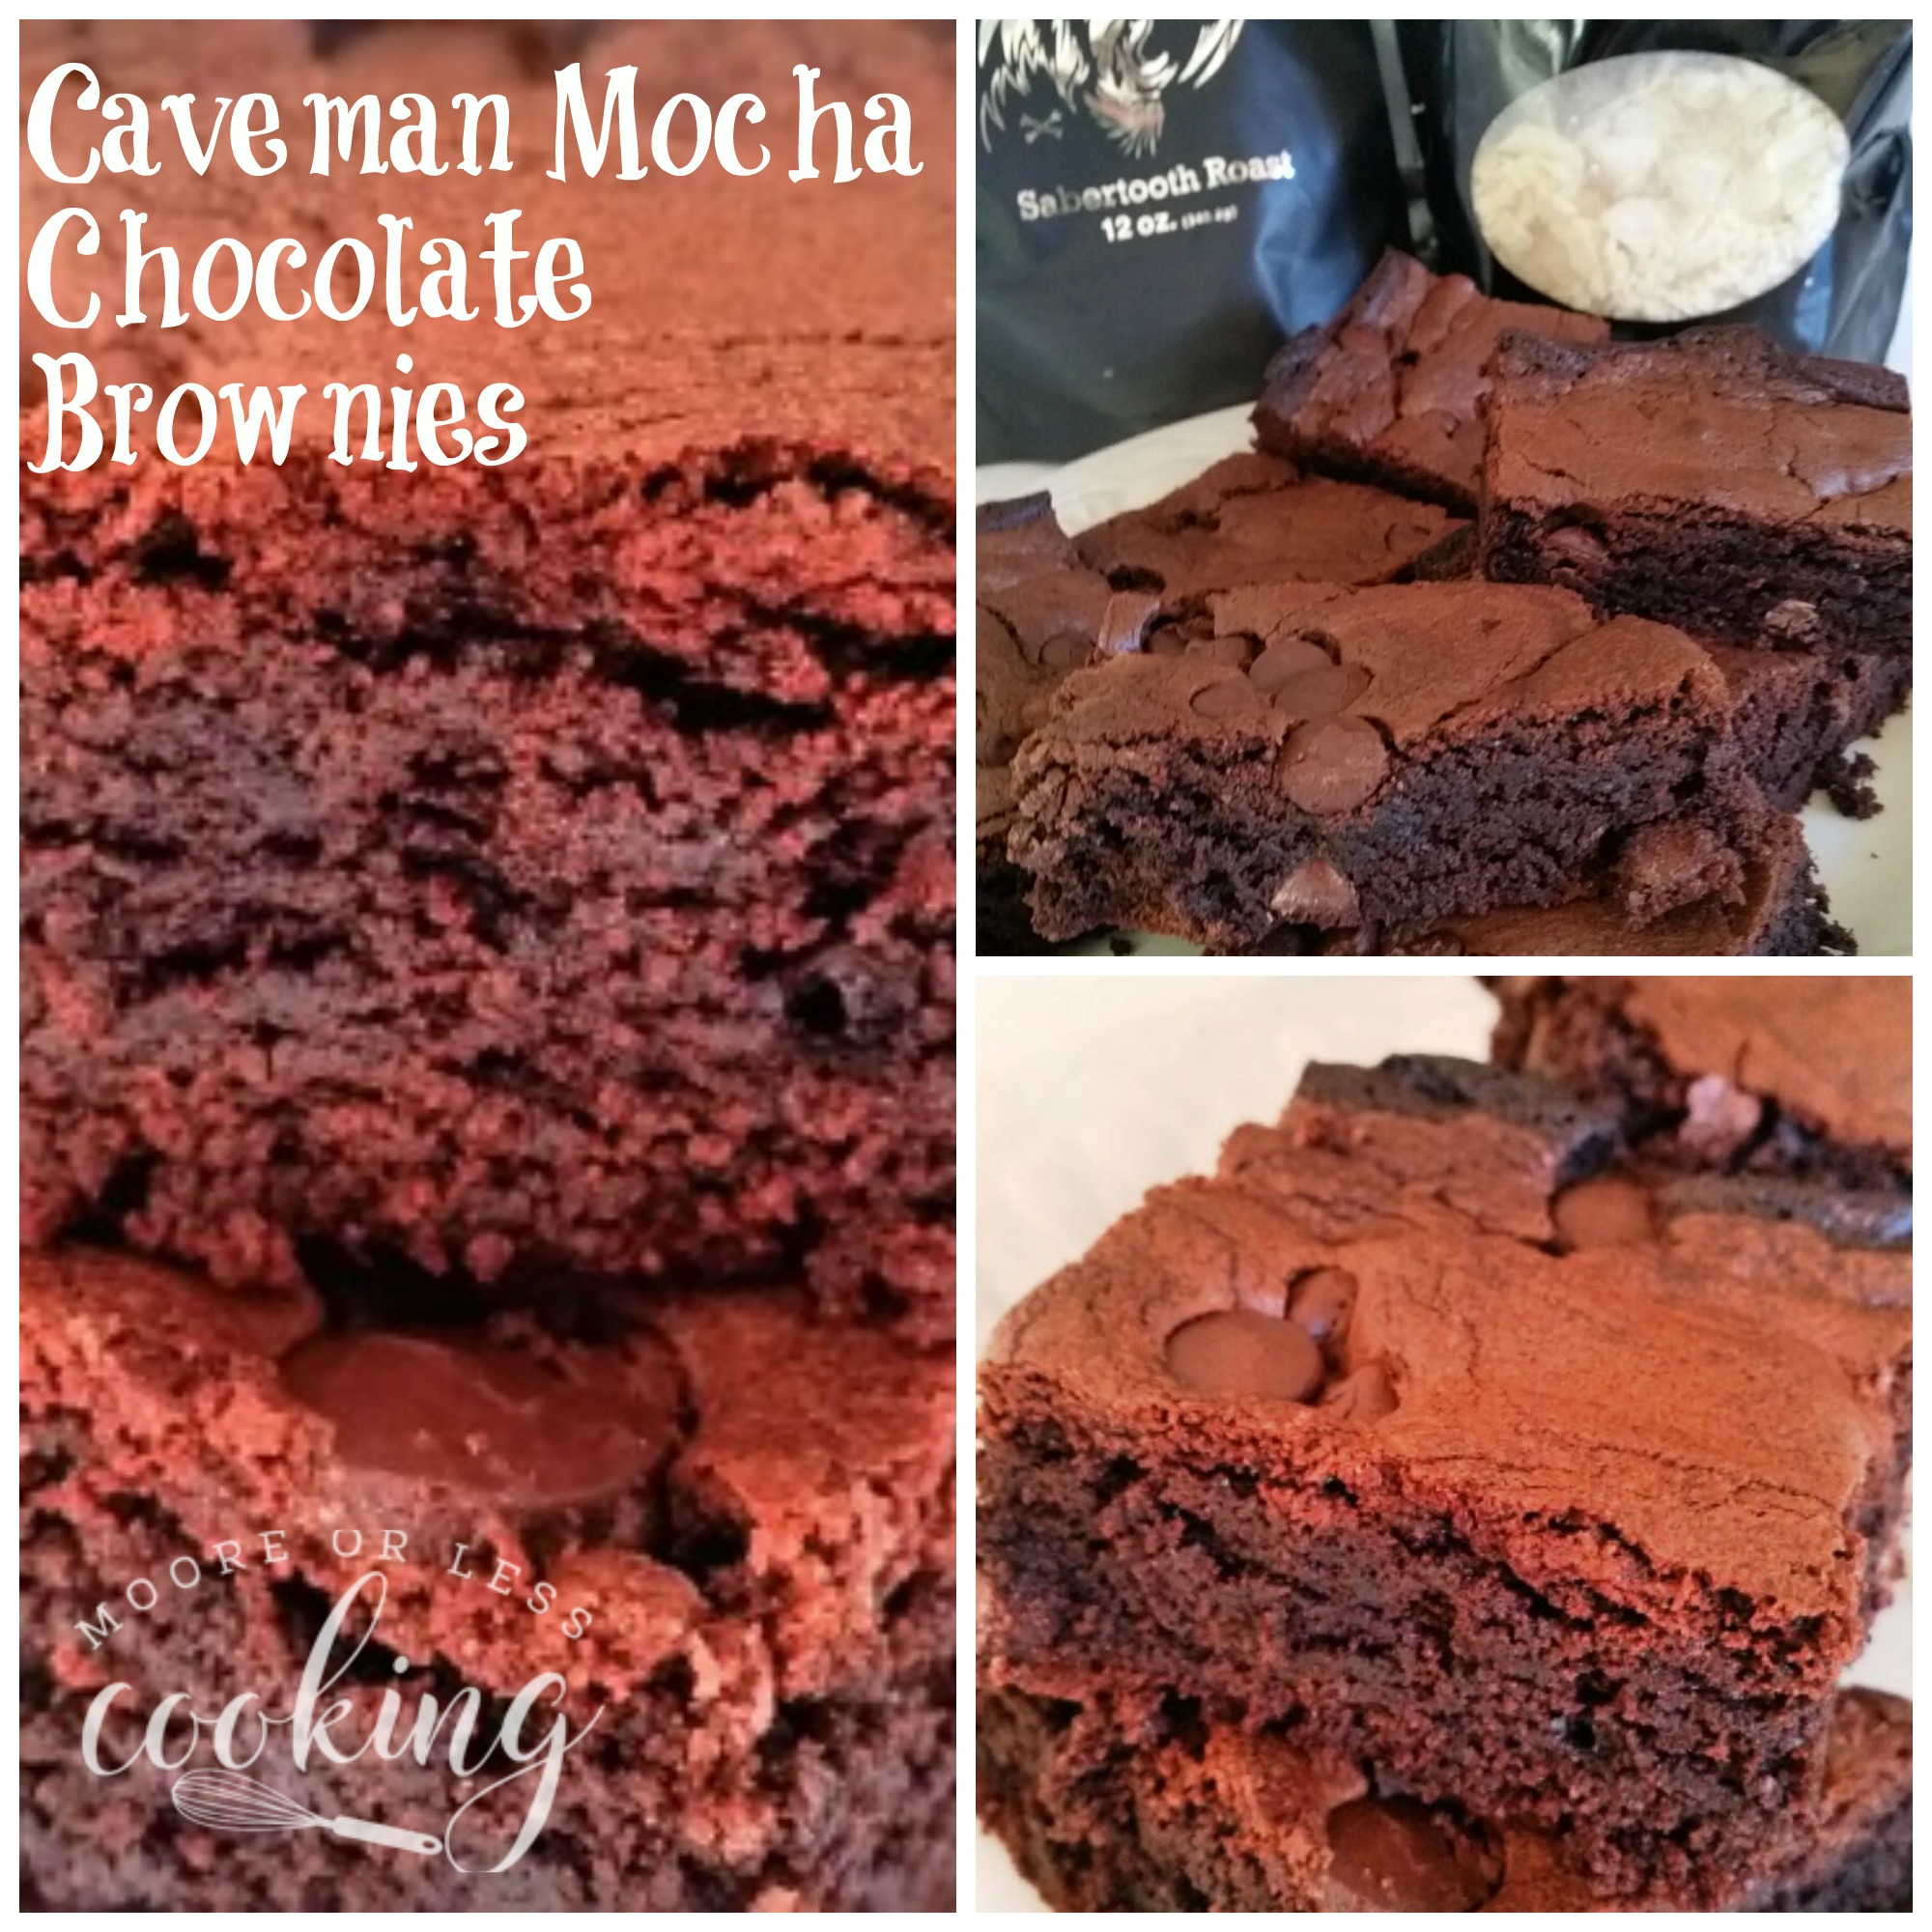 Caveman Mocha Chocolate Brownies